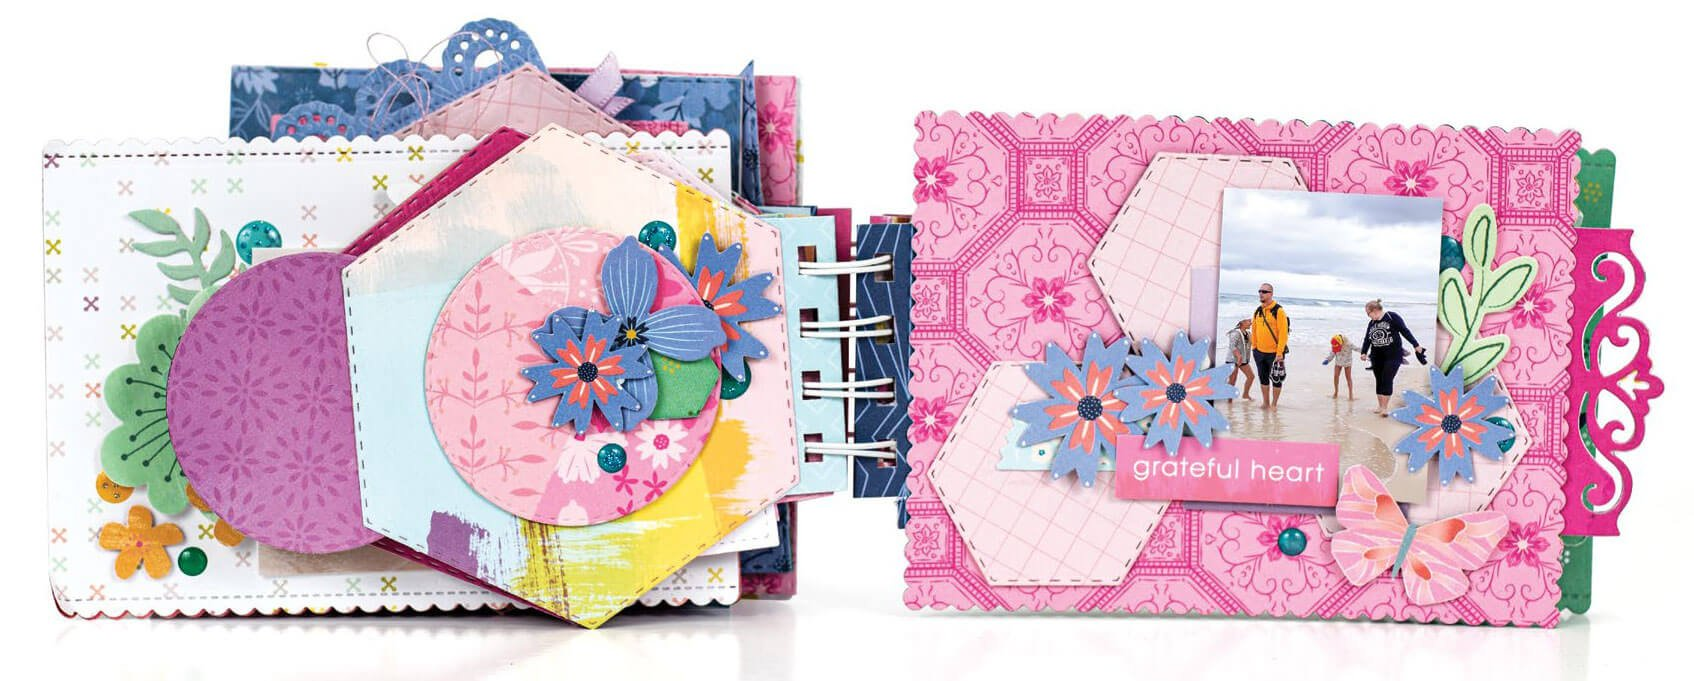 Scrapbook & Cards Today - Winter 2019 - Blue Butterfly and Rainbow Mini Album by Terhi Koskinen